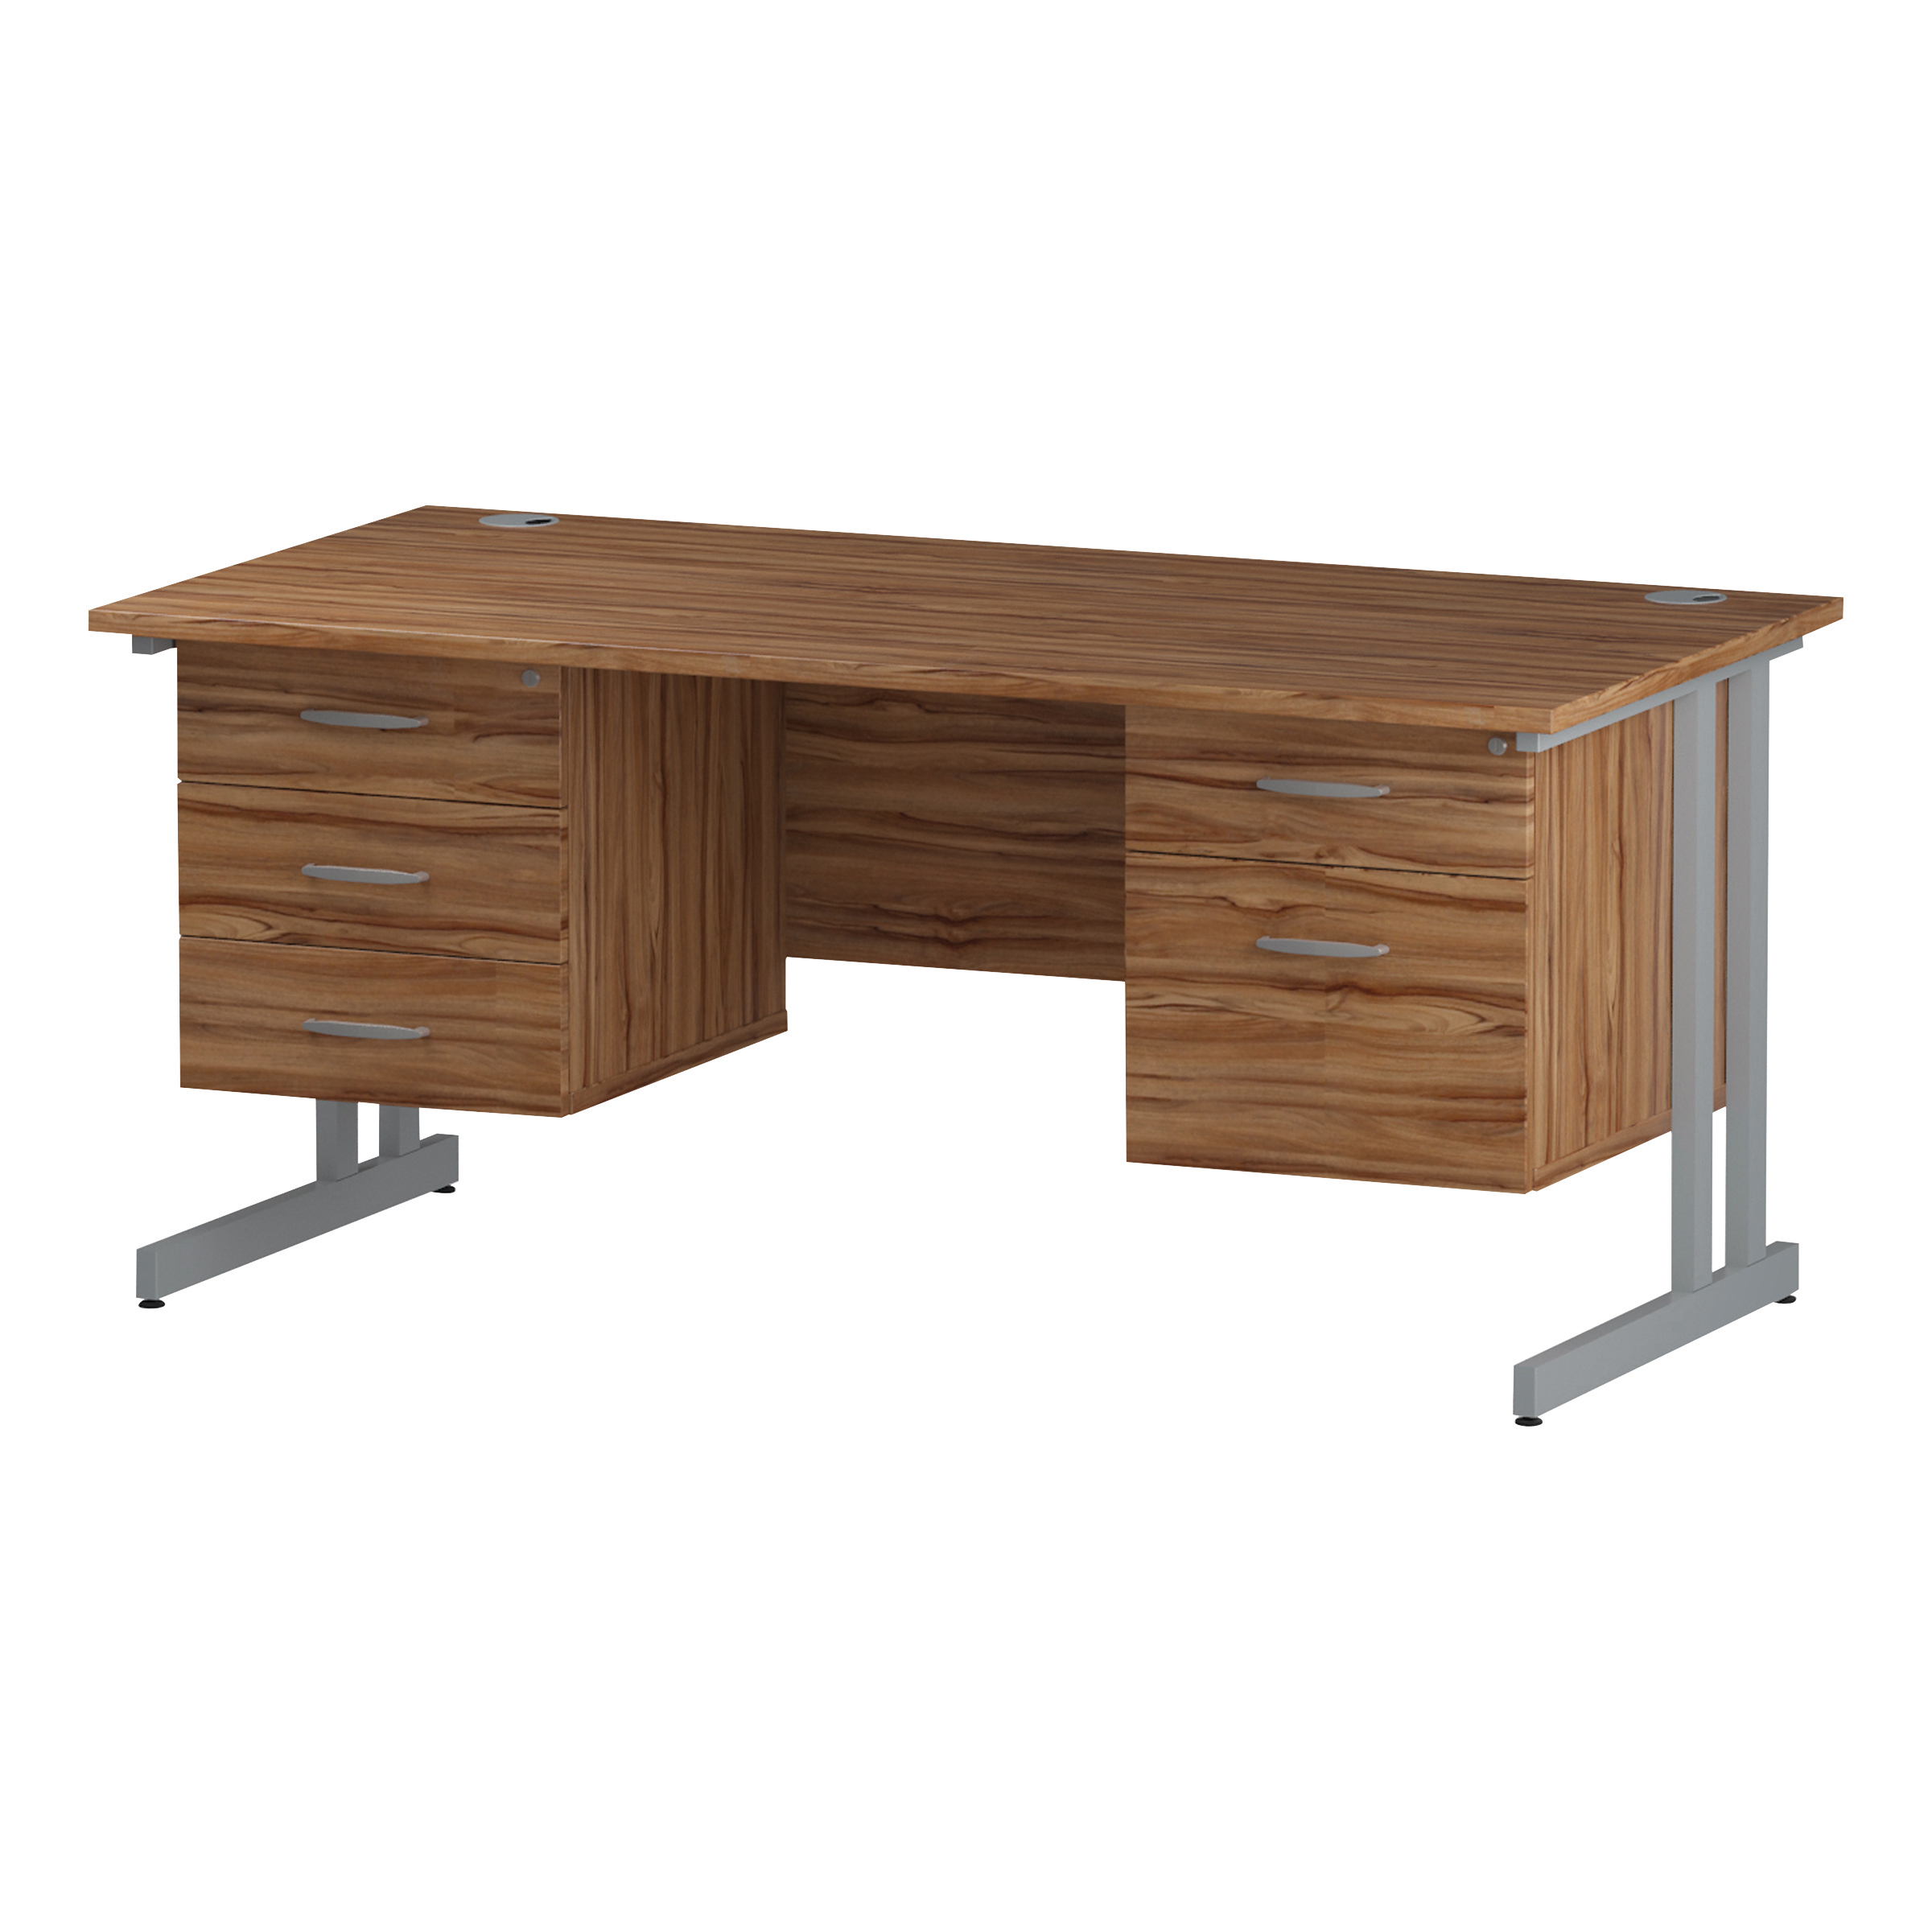 Trexus Rectangular Desk Silver Cantilever Leg 1600x800mm Double Fixed Ped 2&3 Drawers Walnut Ref I001953